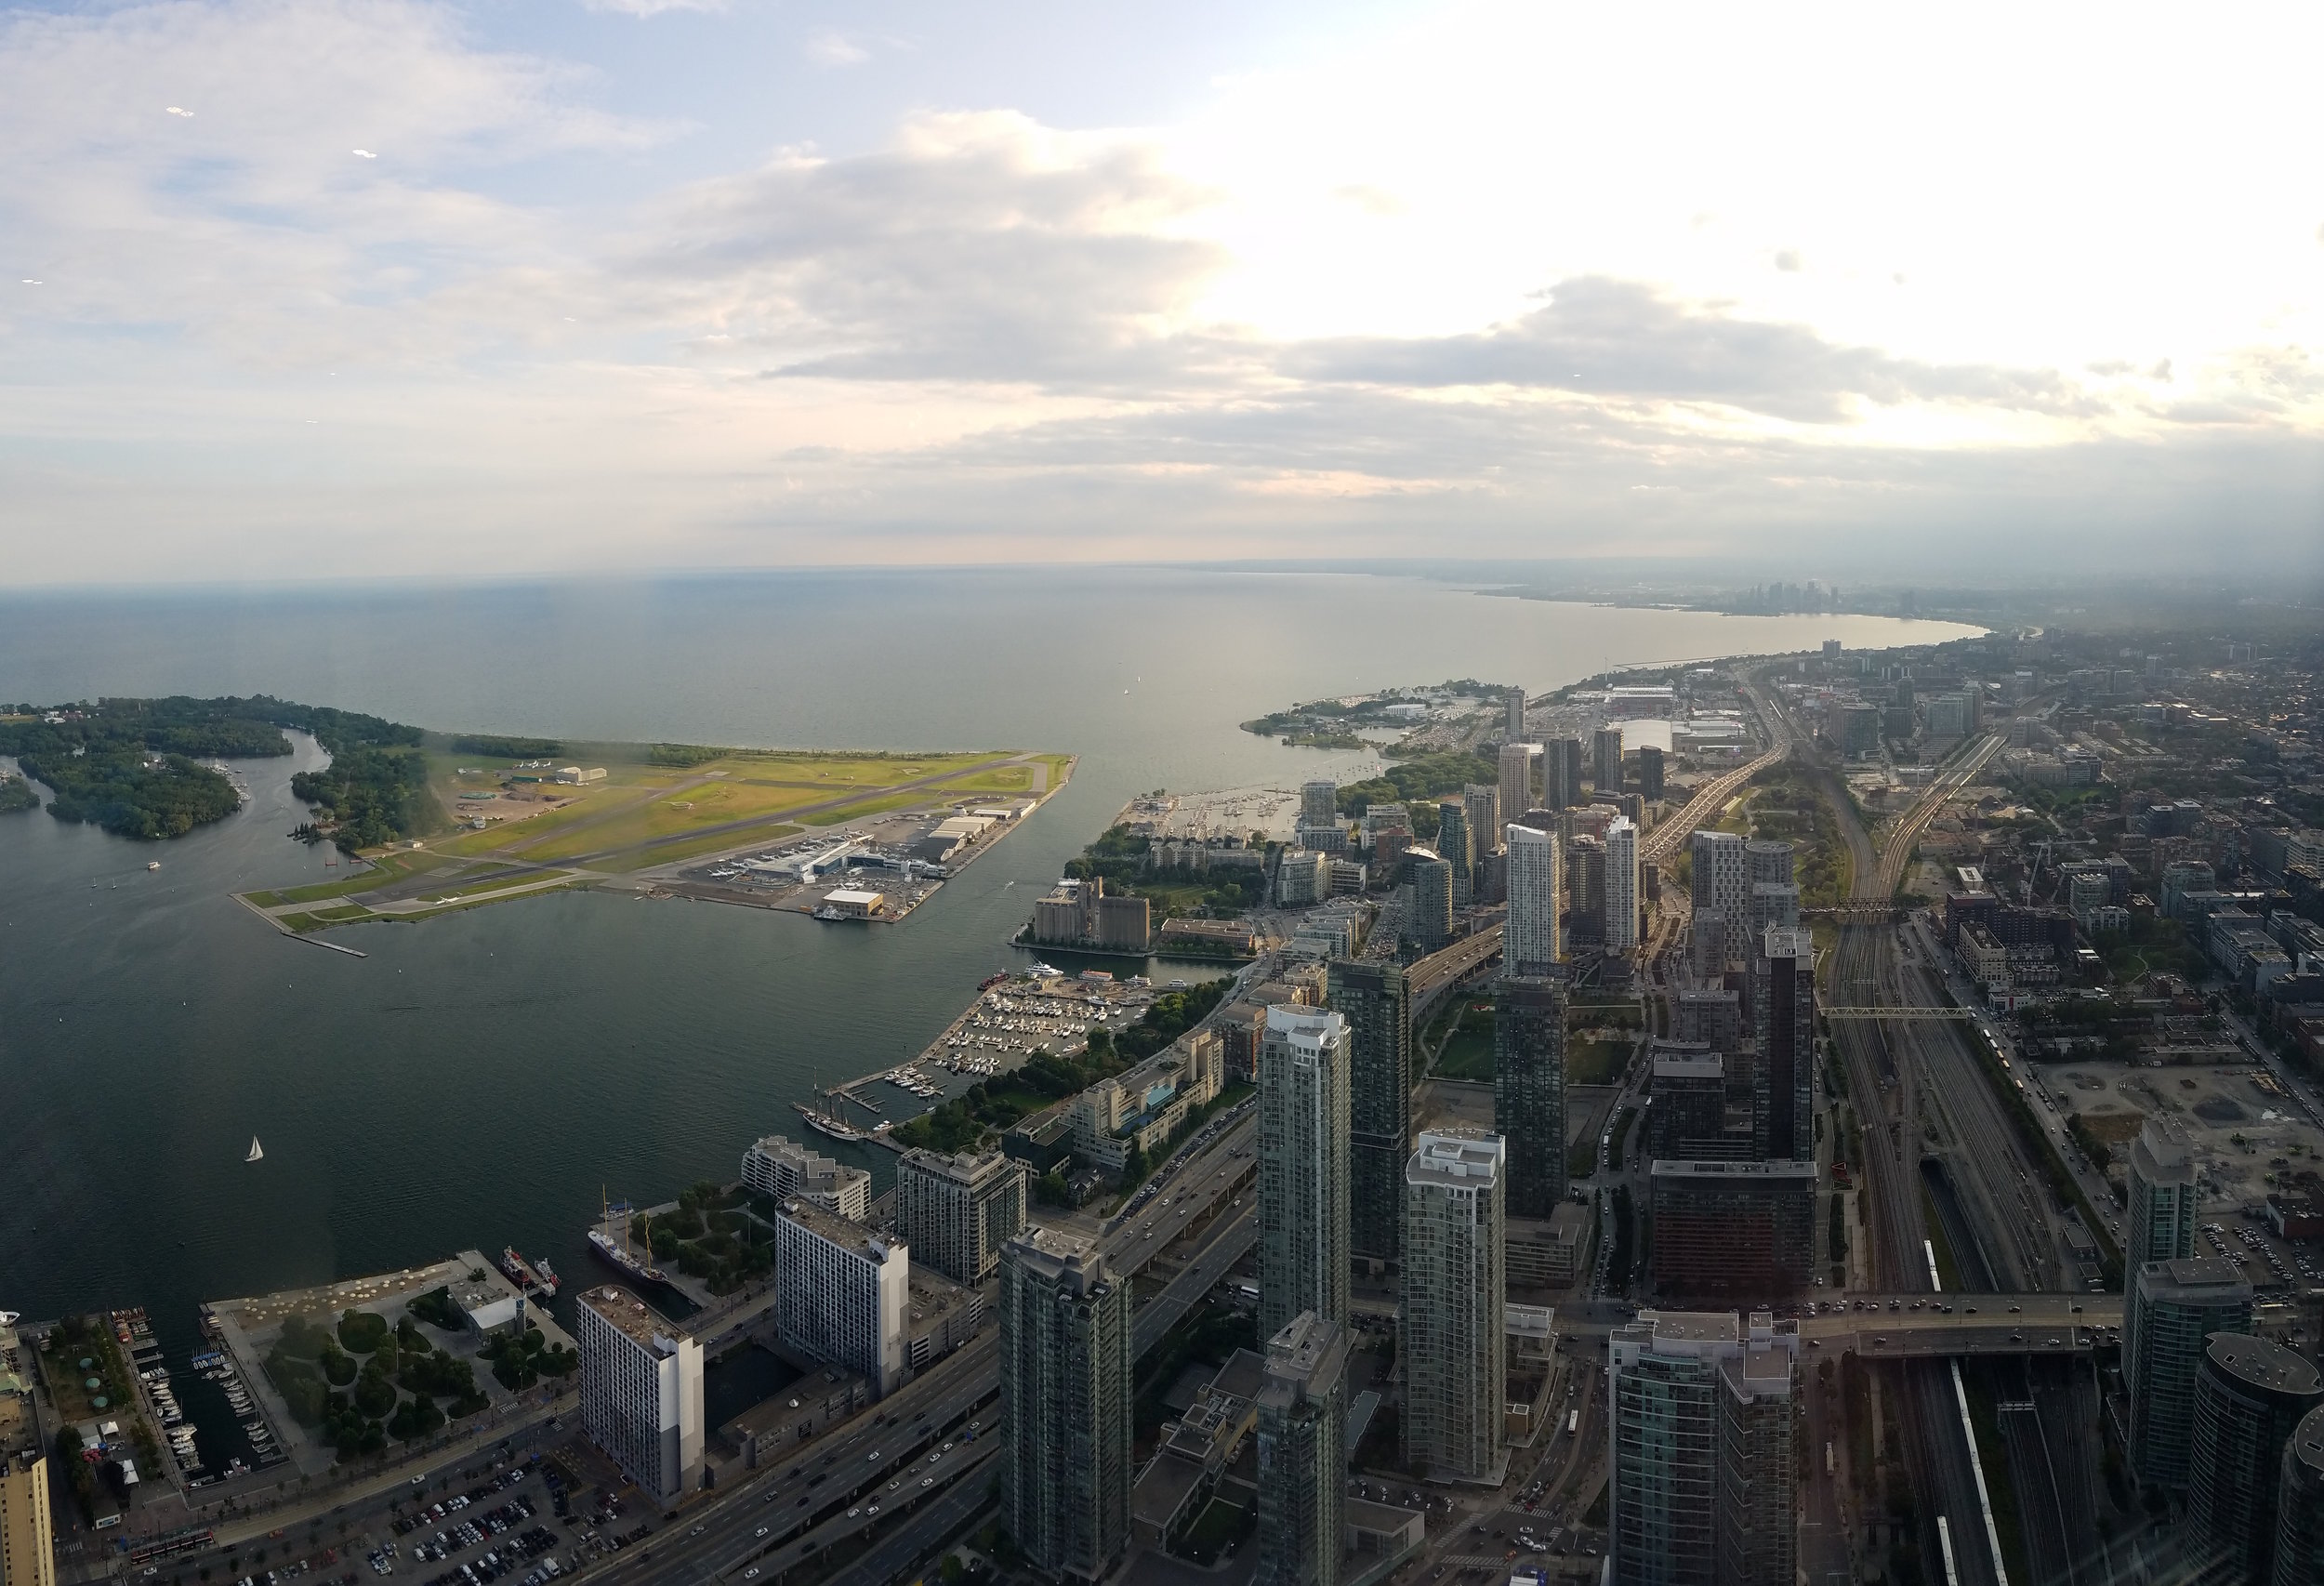 Looking westward from atop the CN Tower